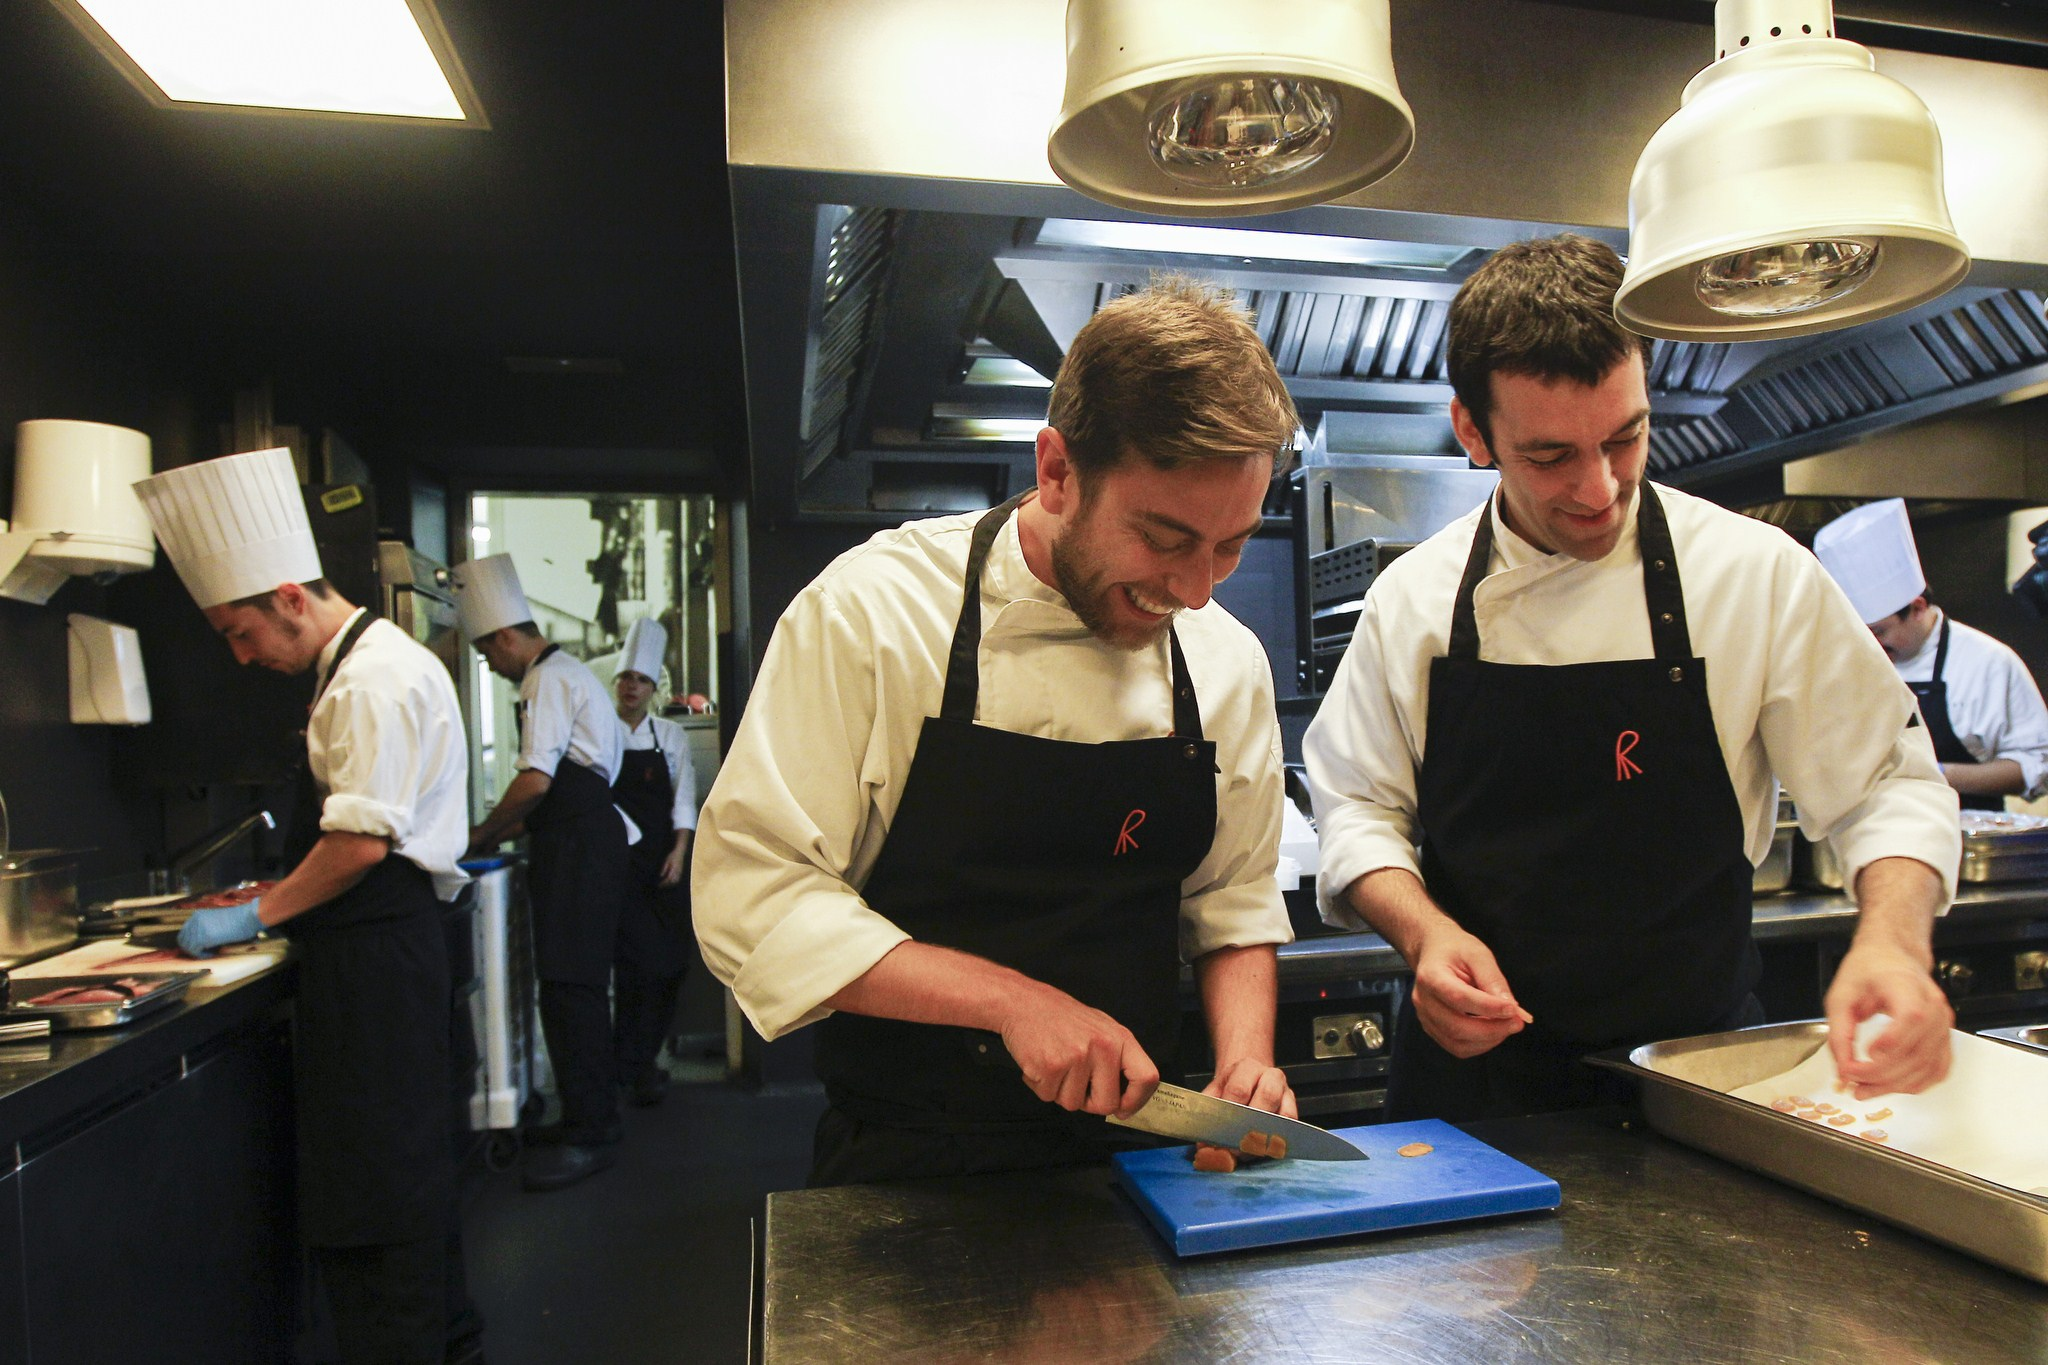 """Chefs of the restaurant """"El Celler de Can Roca"""" Spanish Nacho Baucells (L) and Argentinian Hernan Luchetti (R) work in the kitchen in Girona on June 2, 2015. Spain's """"El Celler de Can Roca"""" was crowned the world's best restaurant on June 1, 2015 winning praise for the """"collective genius"""" of the three brothers who run it. It was the second time the Girona eatery has topped the World's 50 Best Restaurant awards in London, after taking the number one spot in 2013.   AFP PHOTO/ QUIQUE GARCIA        (Photo credit should read QUIQUE GARCIA/AFP/Getty Images)"""